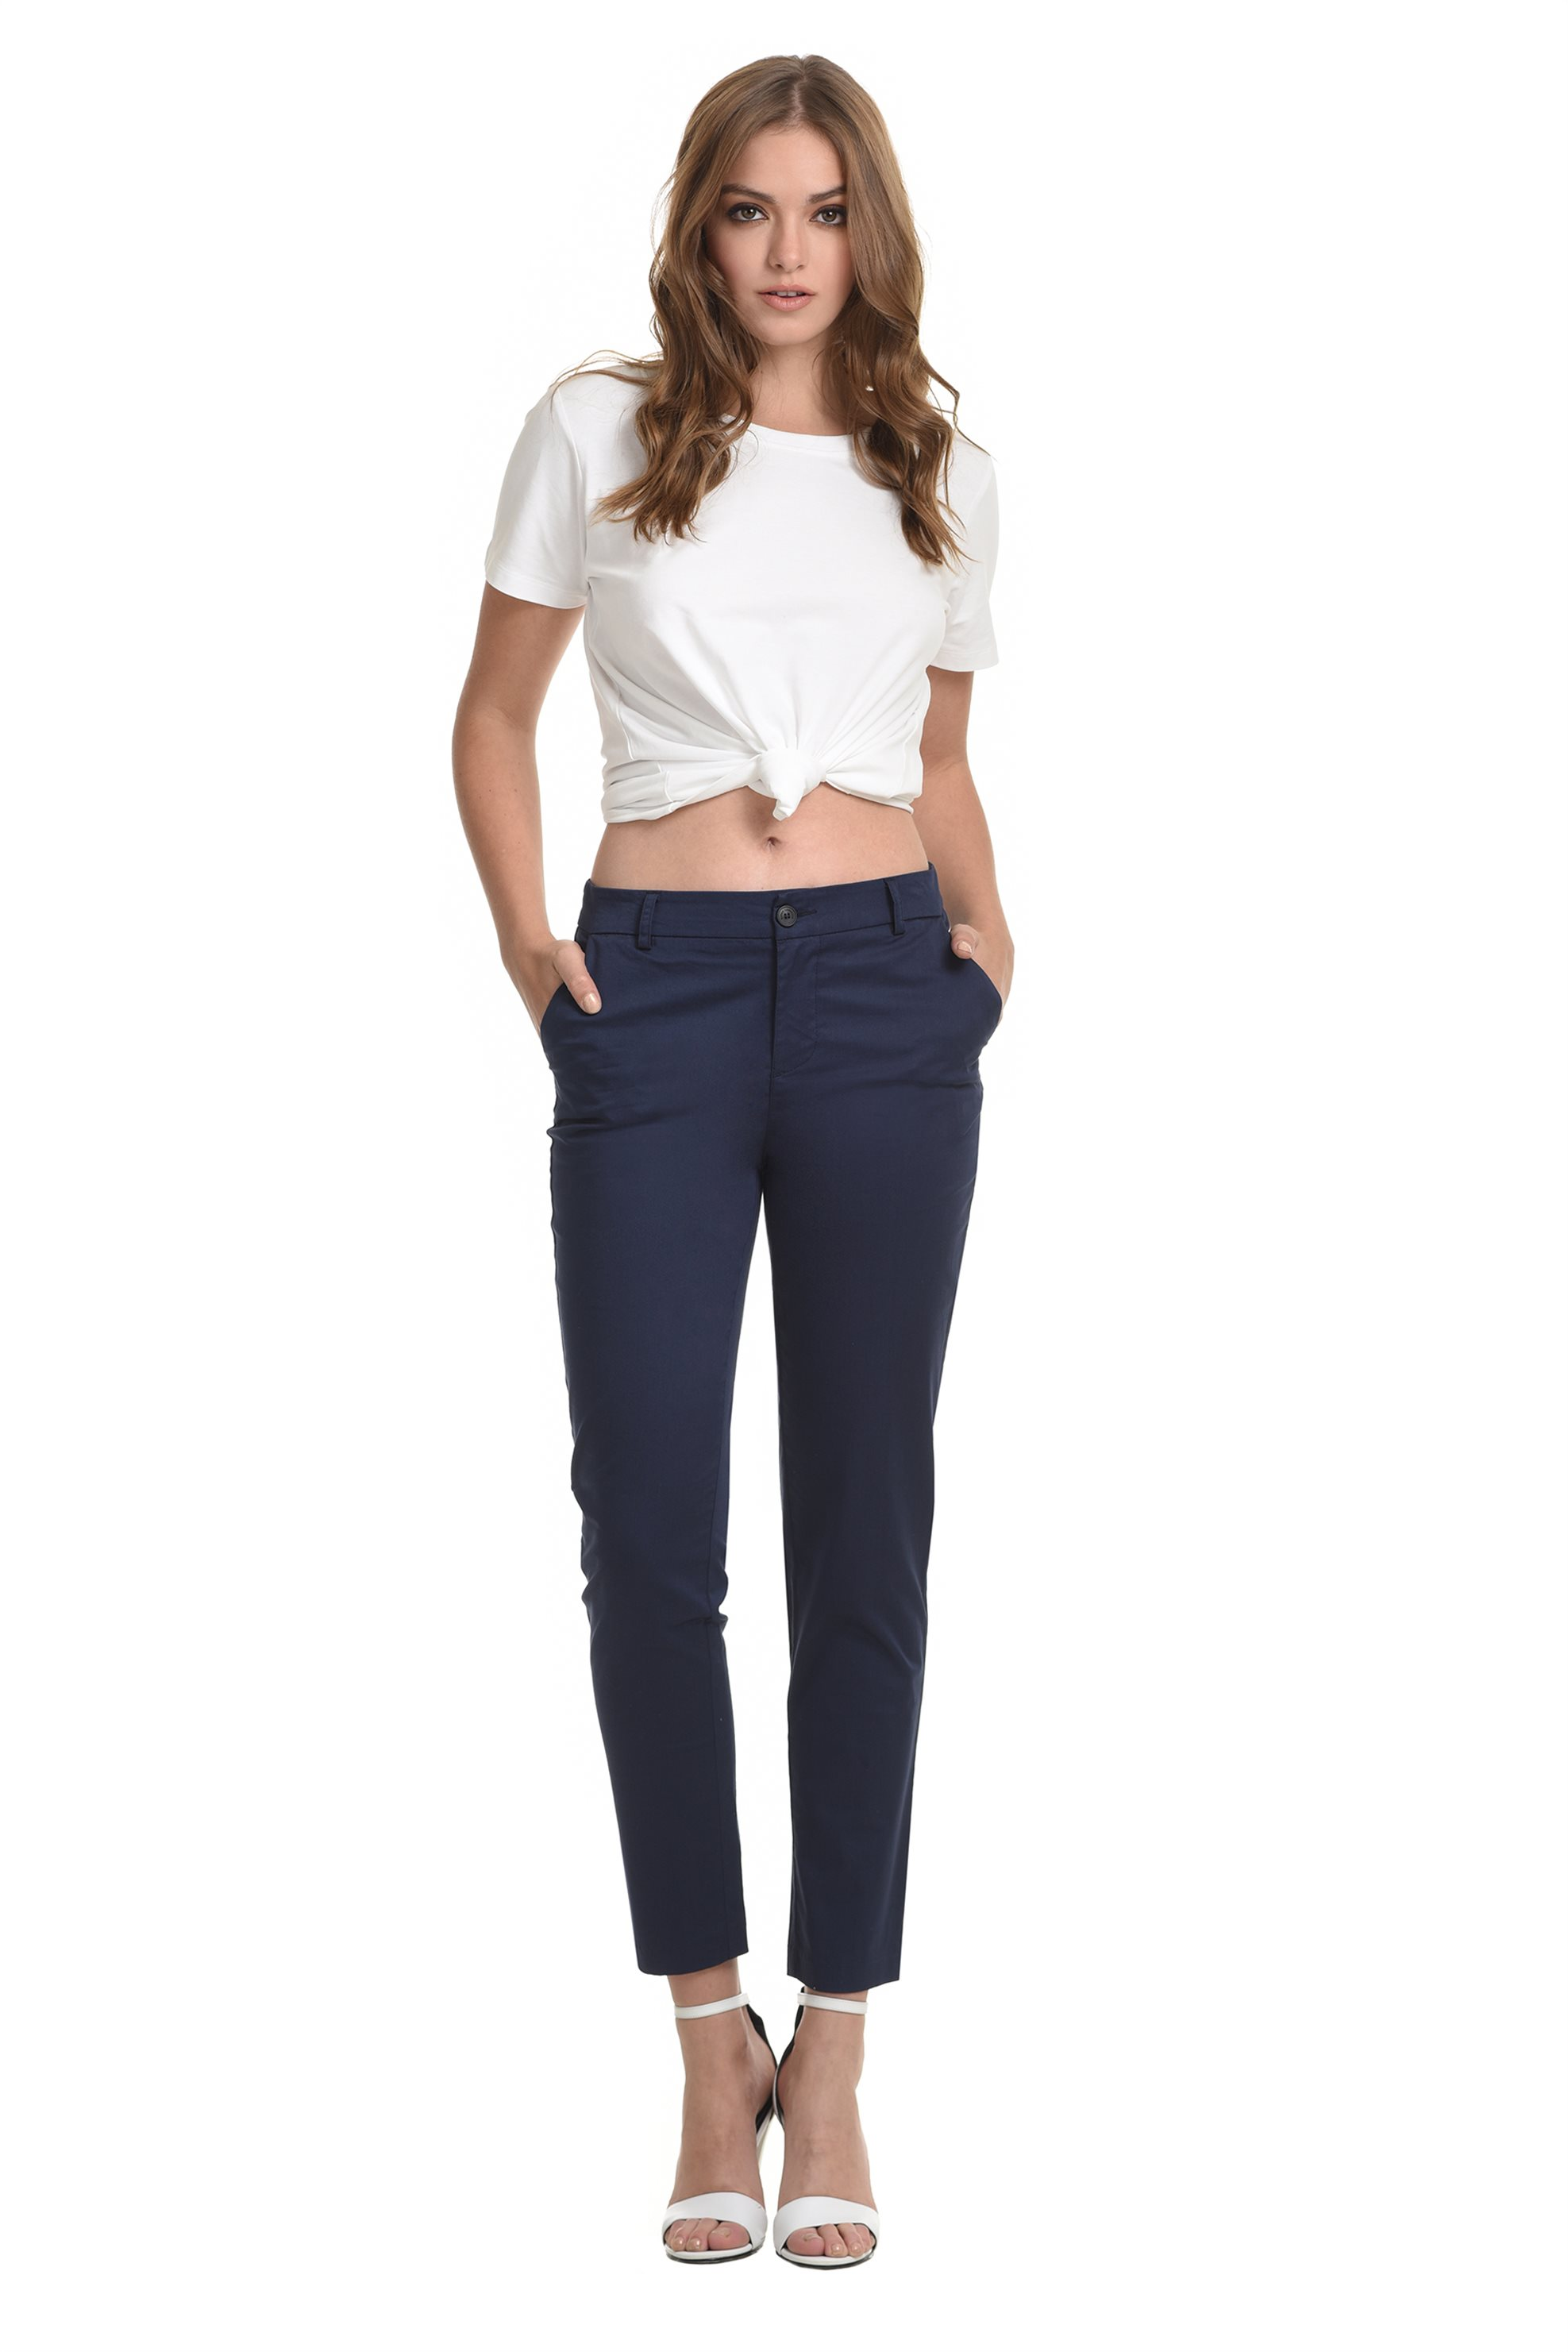 bbe5a598f256 SARAH LAWRENCE - Γυναικεία Chinos Παντελόνια | Outfit.gr